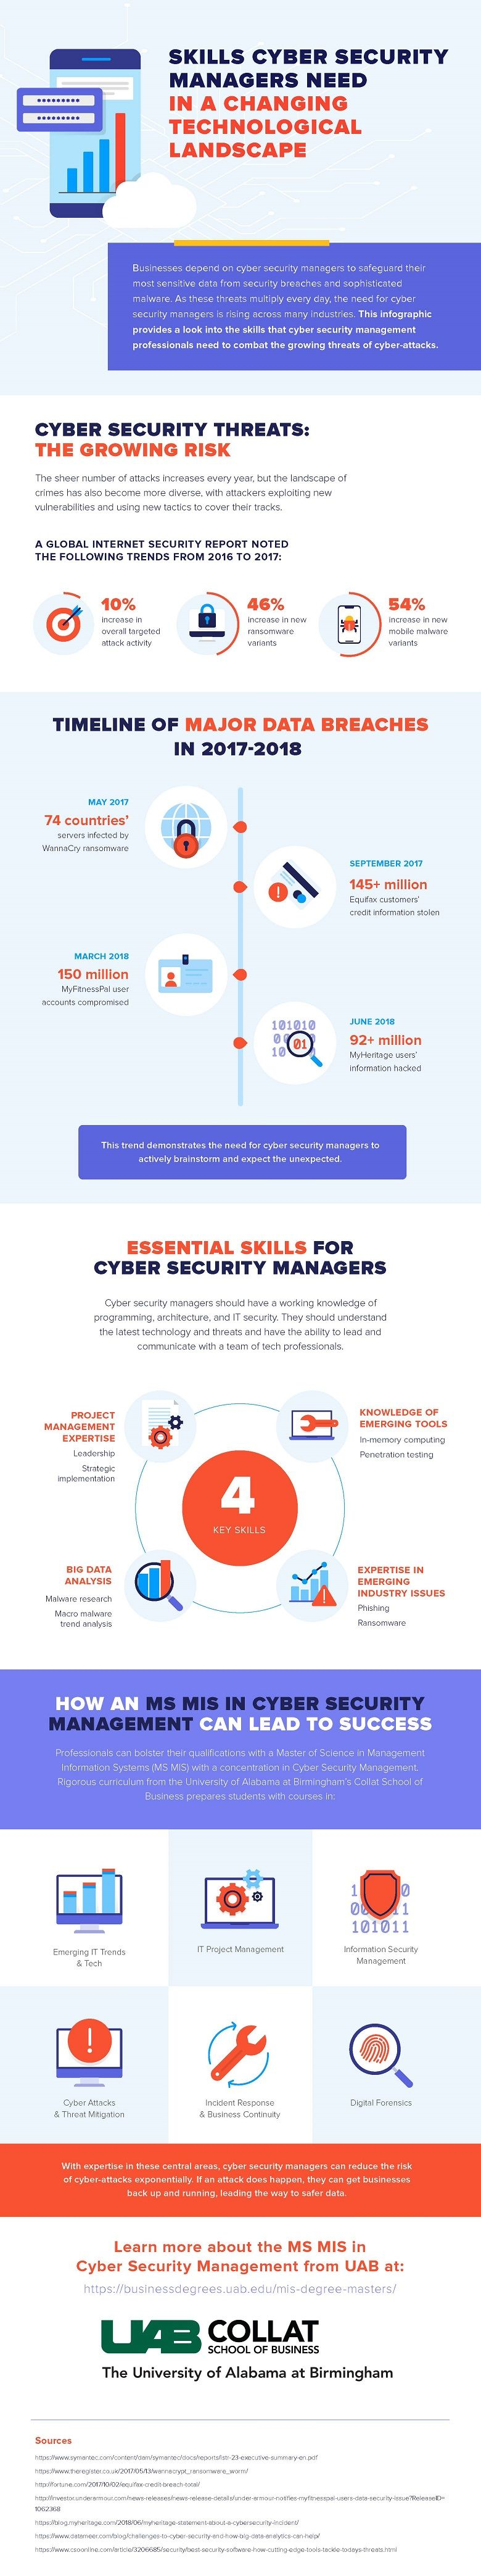 skills firms need to counter emerging cybersecurity threats